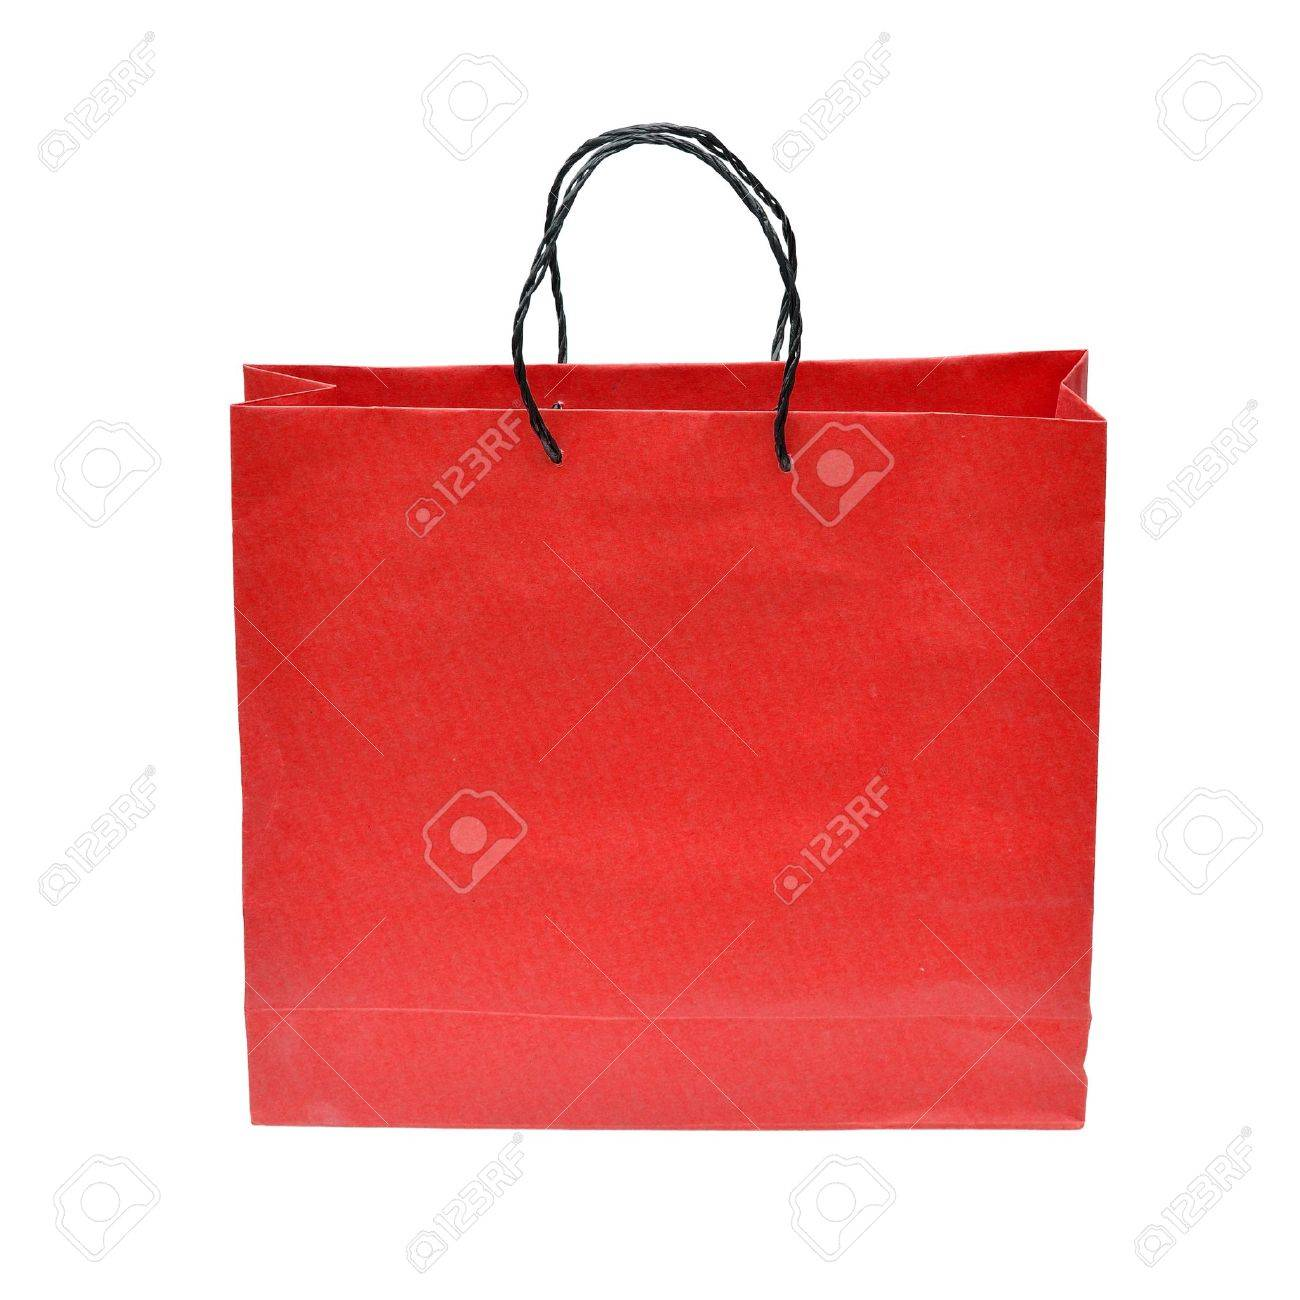 aa52218820c15 Red paper bag for shopping Stock Photo - 15160335